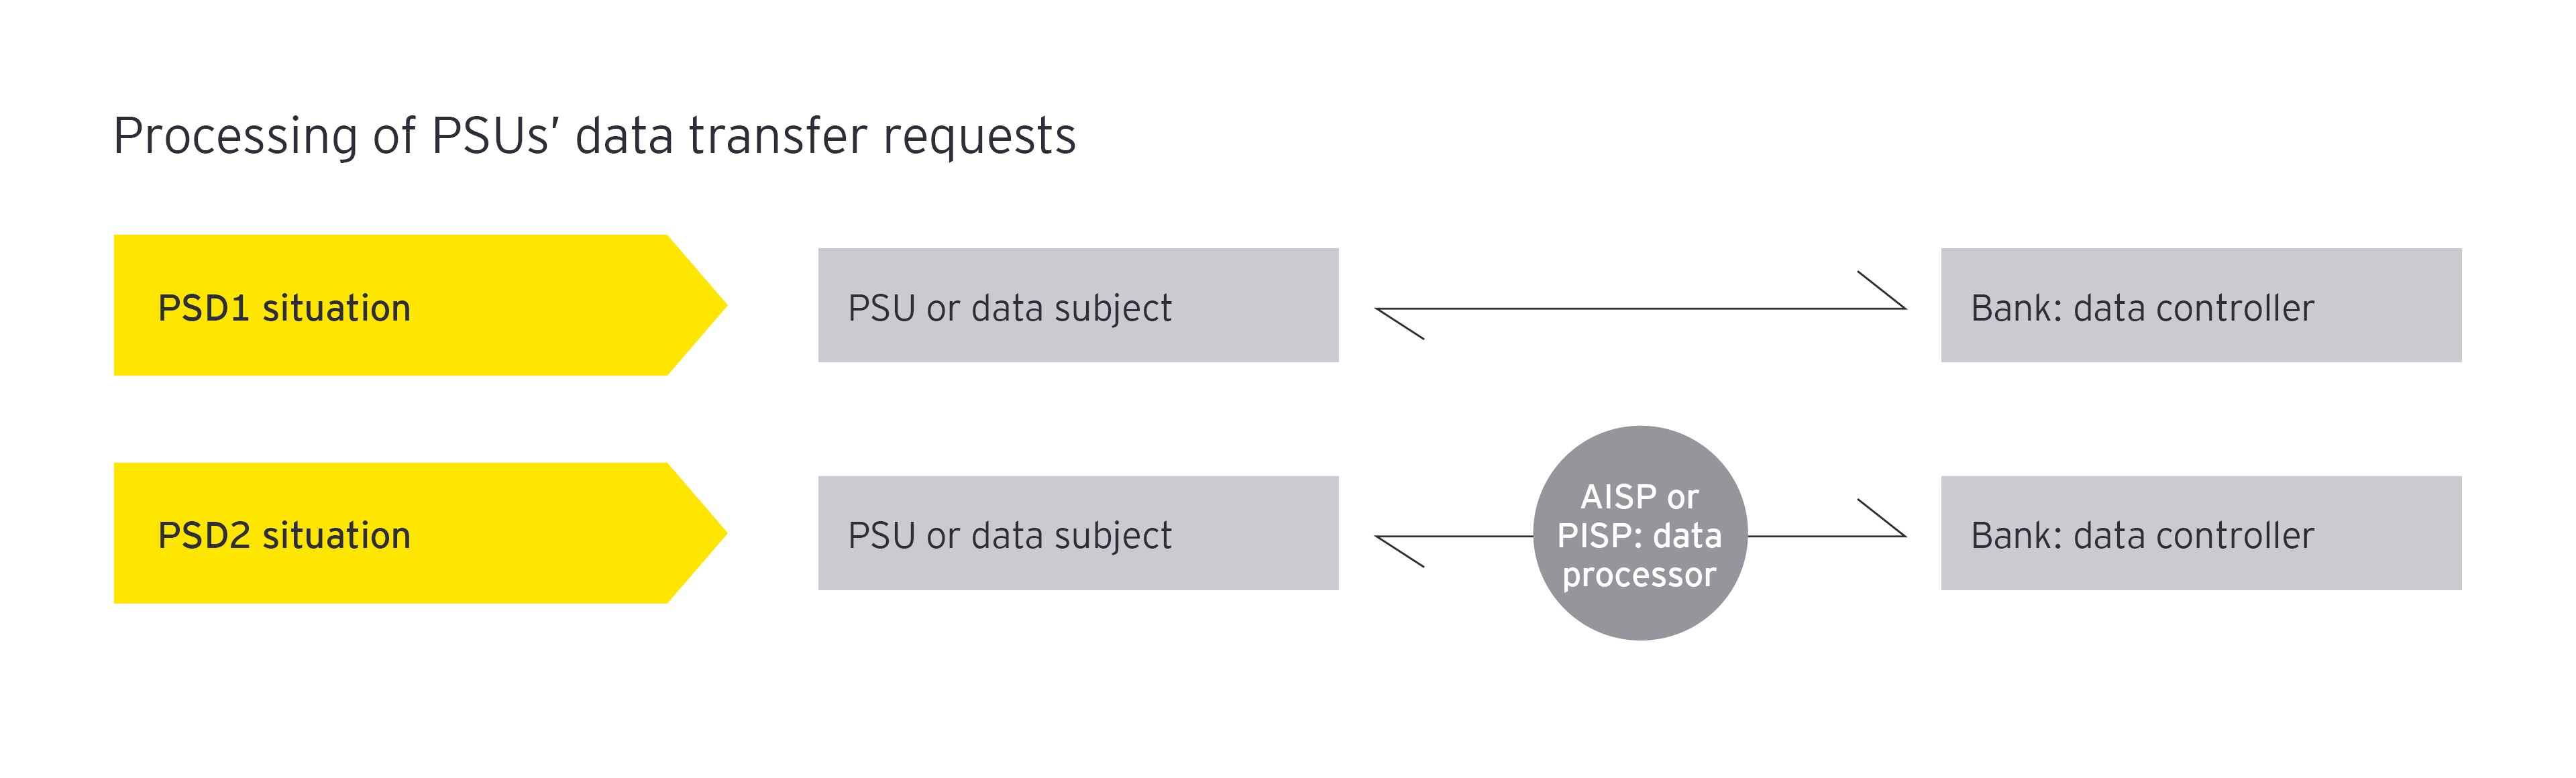 processing of PSUs data transfer requests